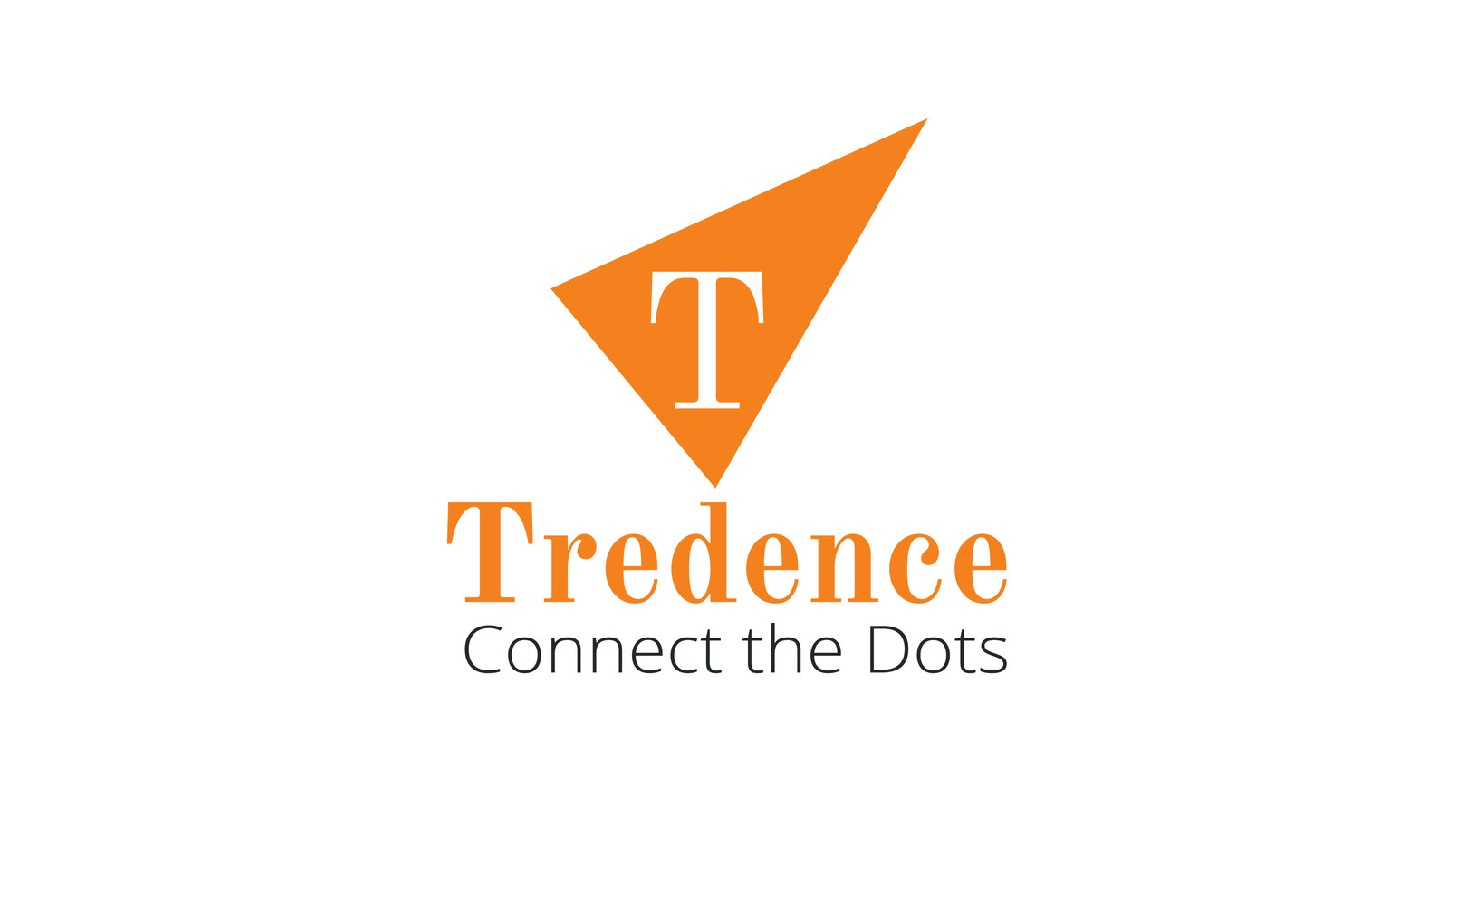 Tredence in orange font with orange logo on top